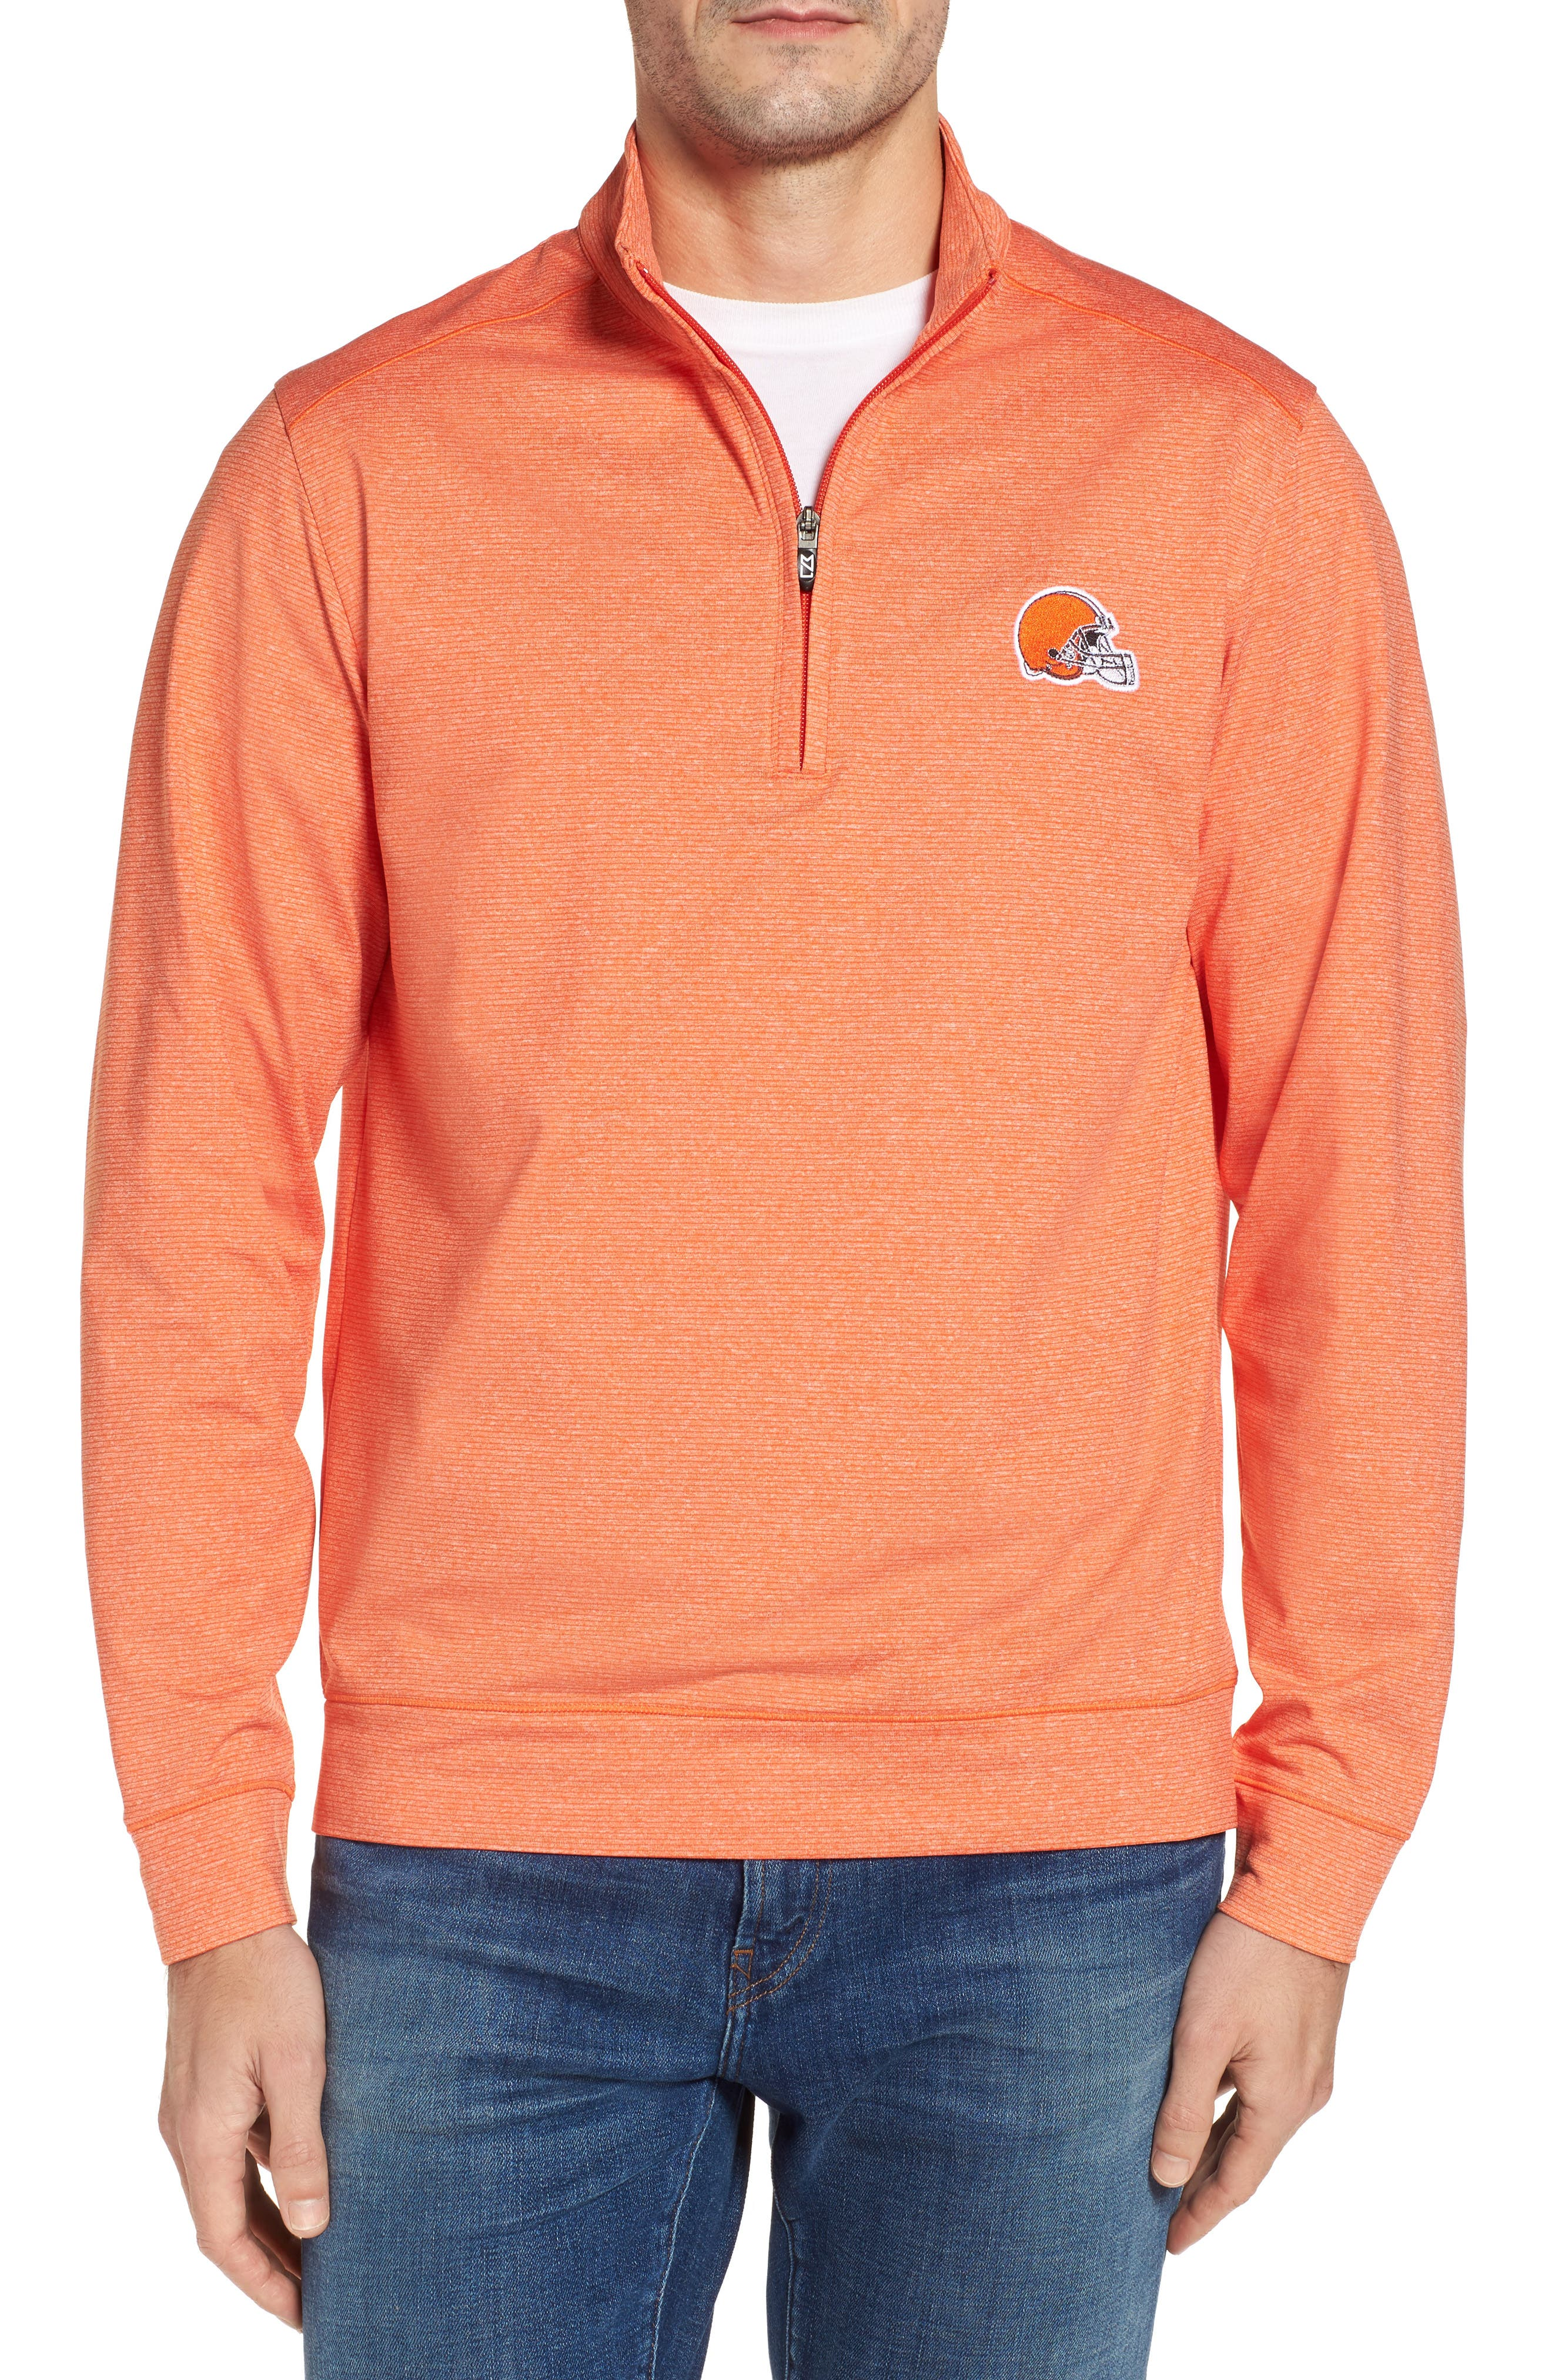 Alternate Image 1 Selected - Cutter & Buck Shoreline - Cleveland Browns Half Zip Pullover